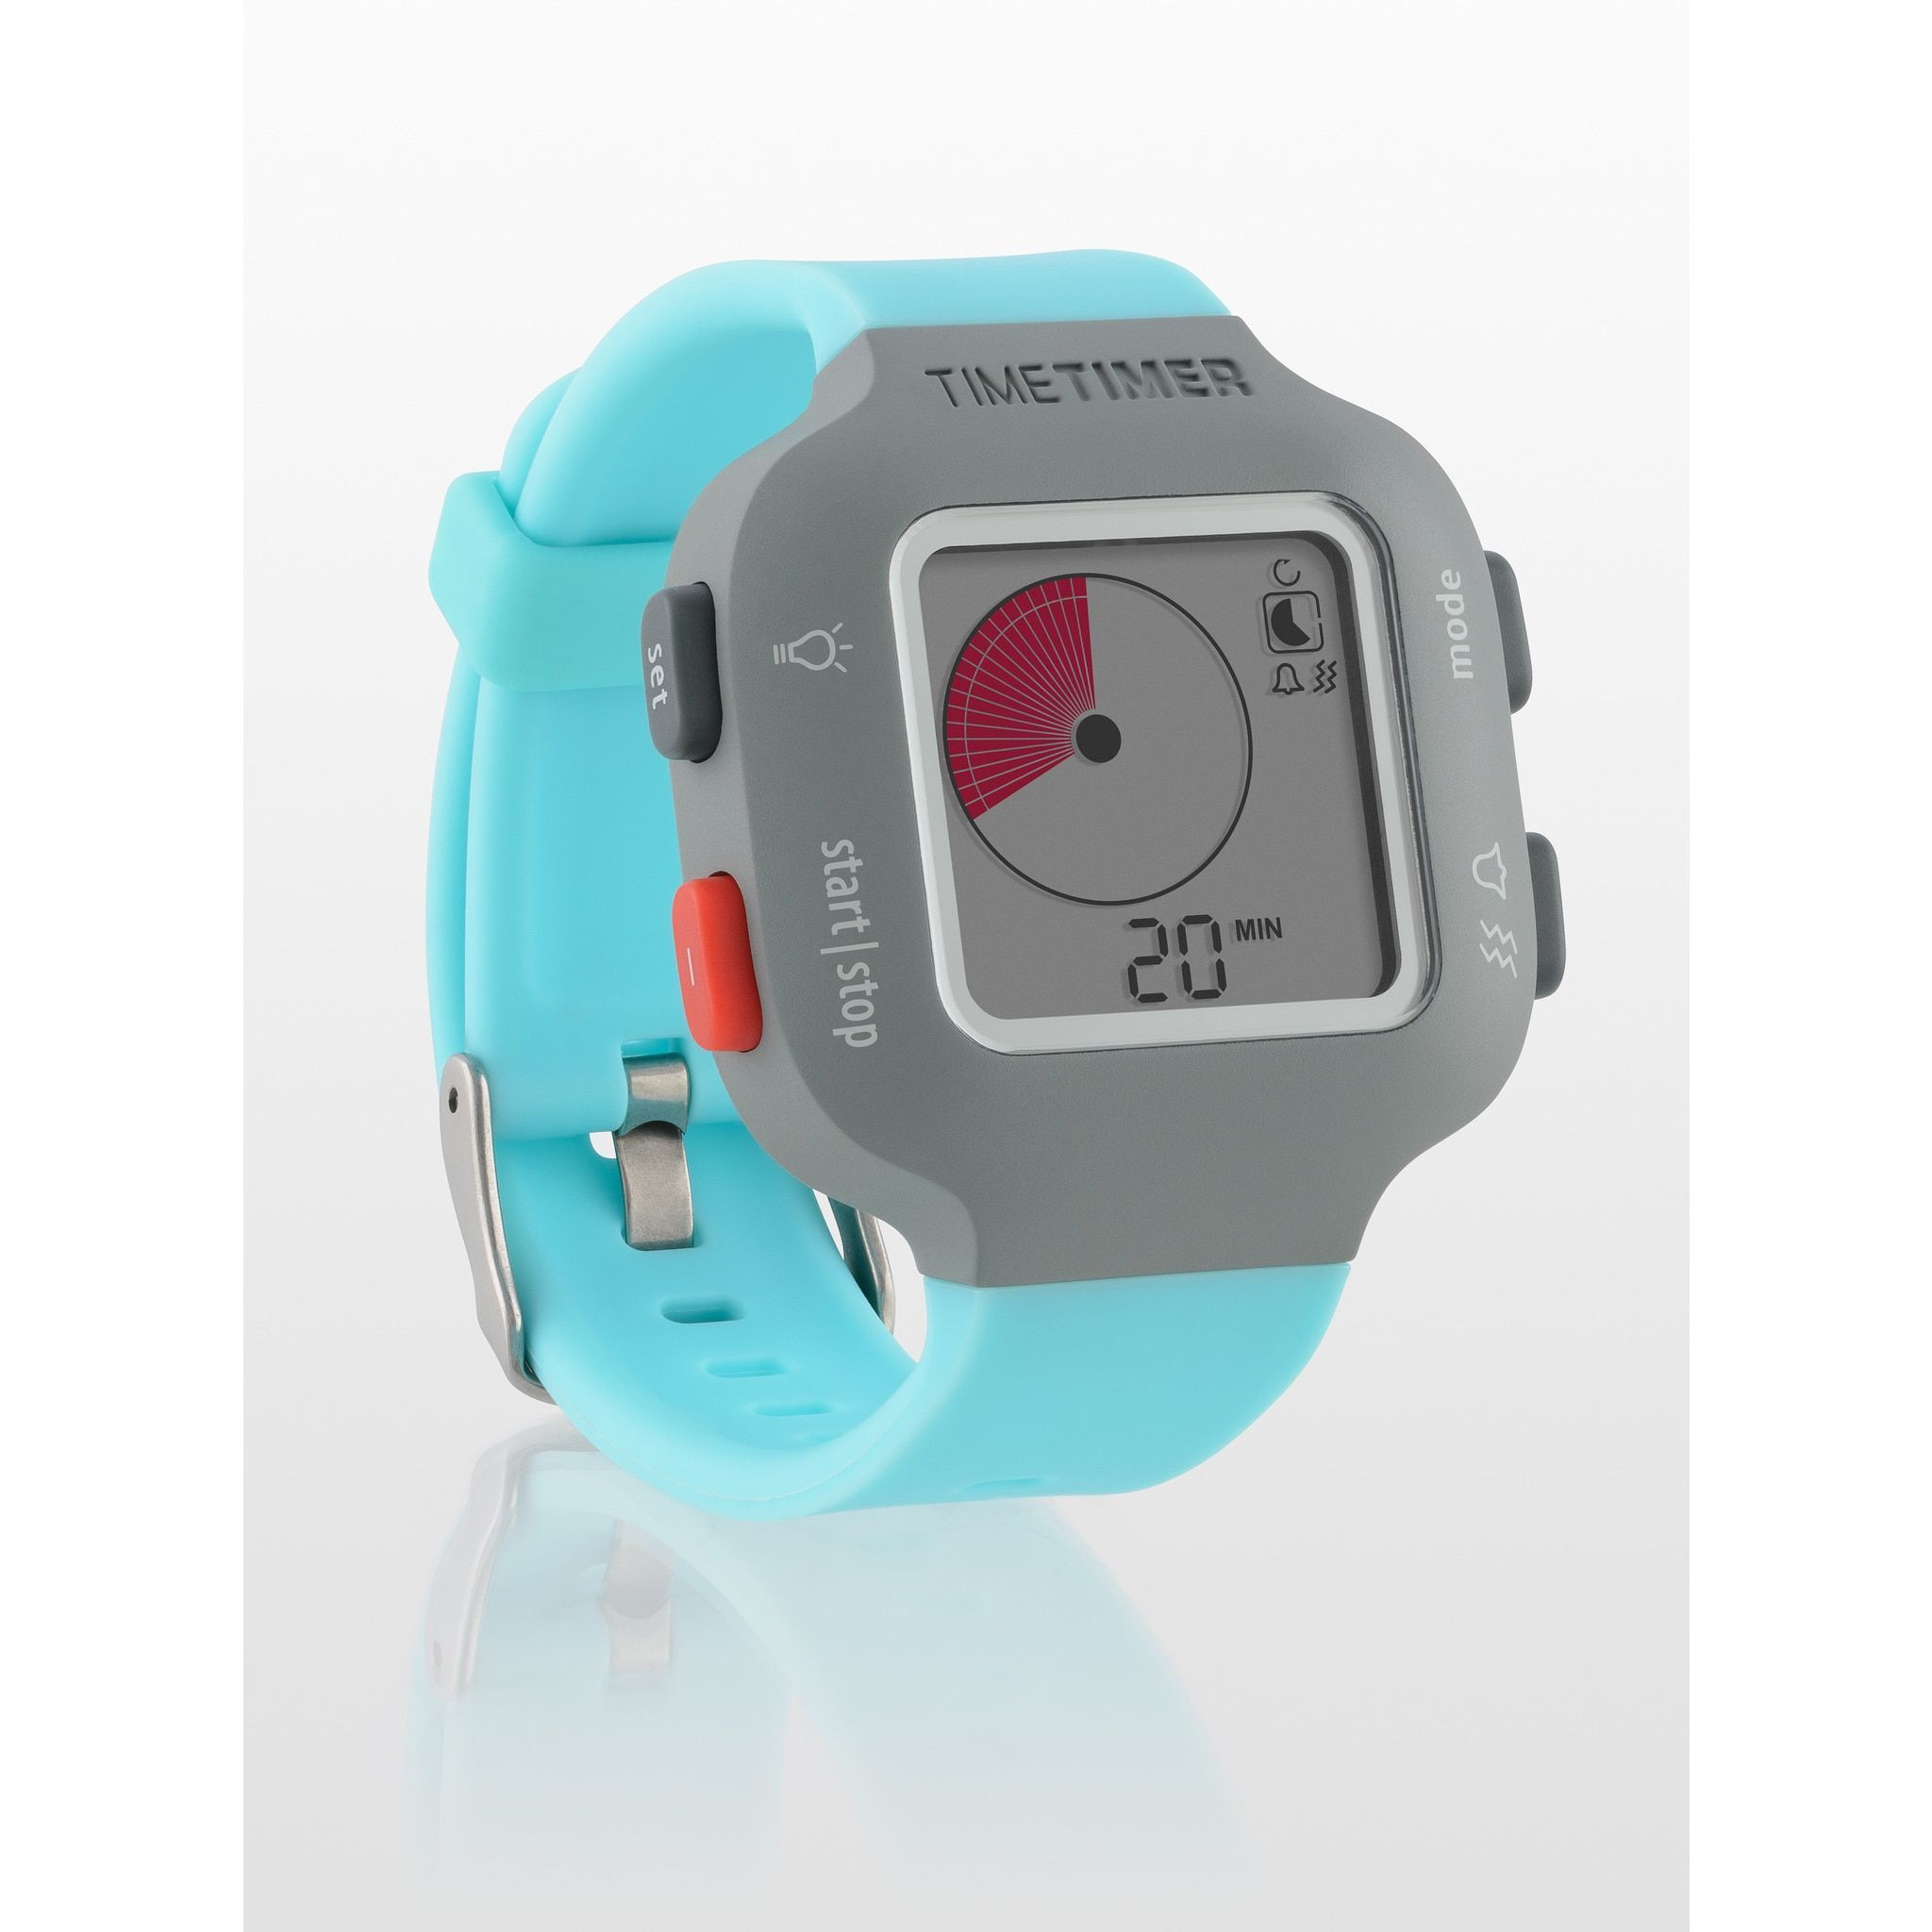 The Time Timer Watch PLUS Sky Blue Small Personal Time